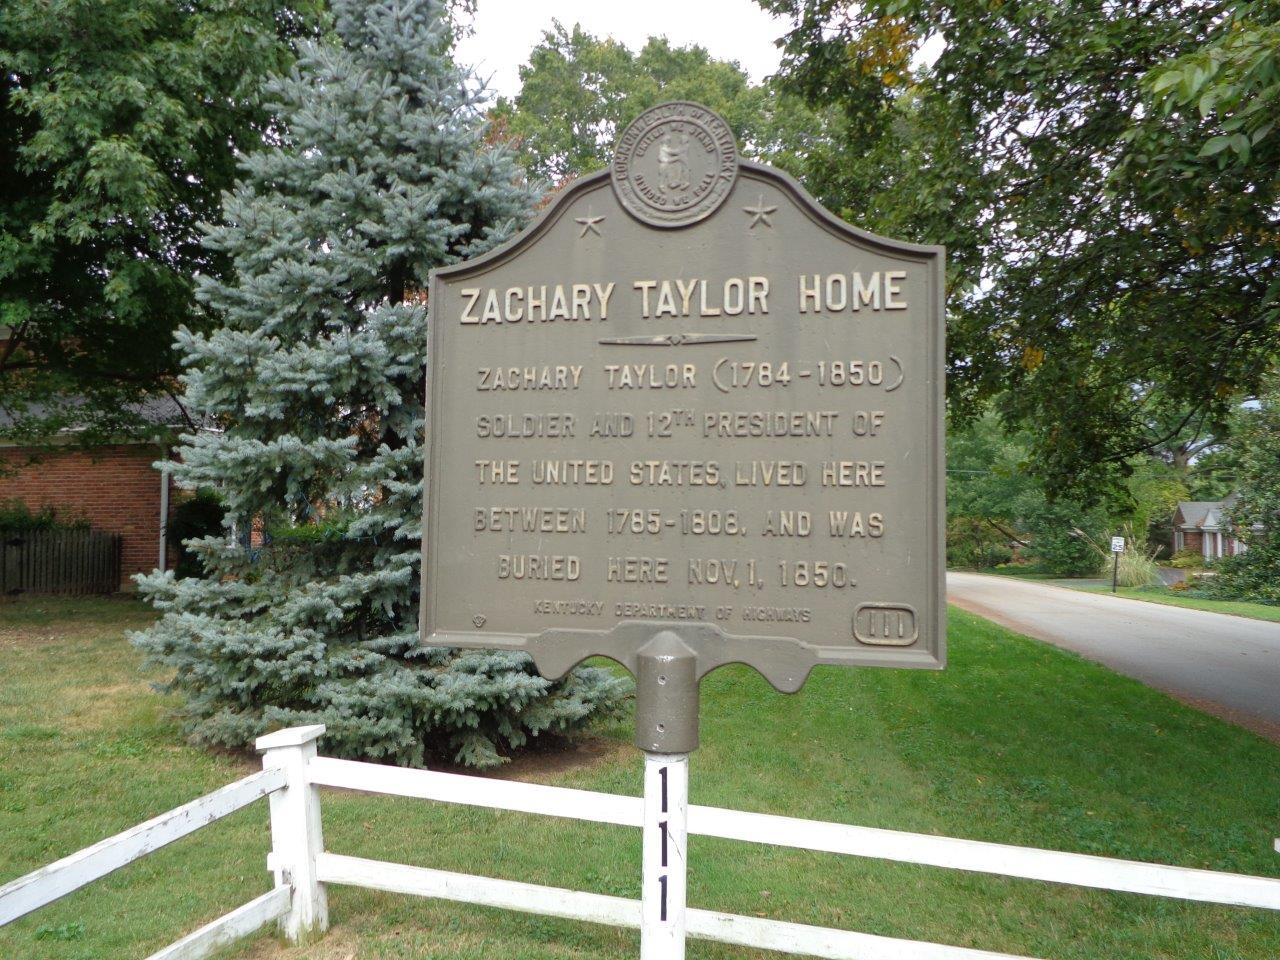 Zachary Taylor's Springfield in Louisville, KY